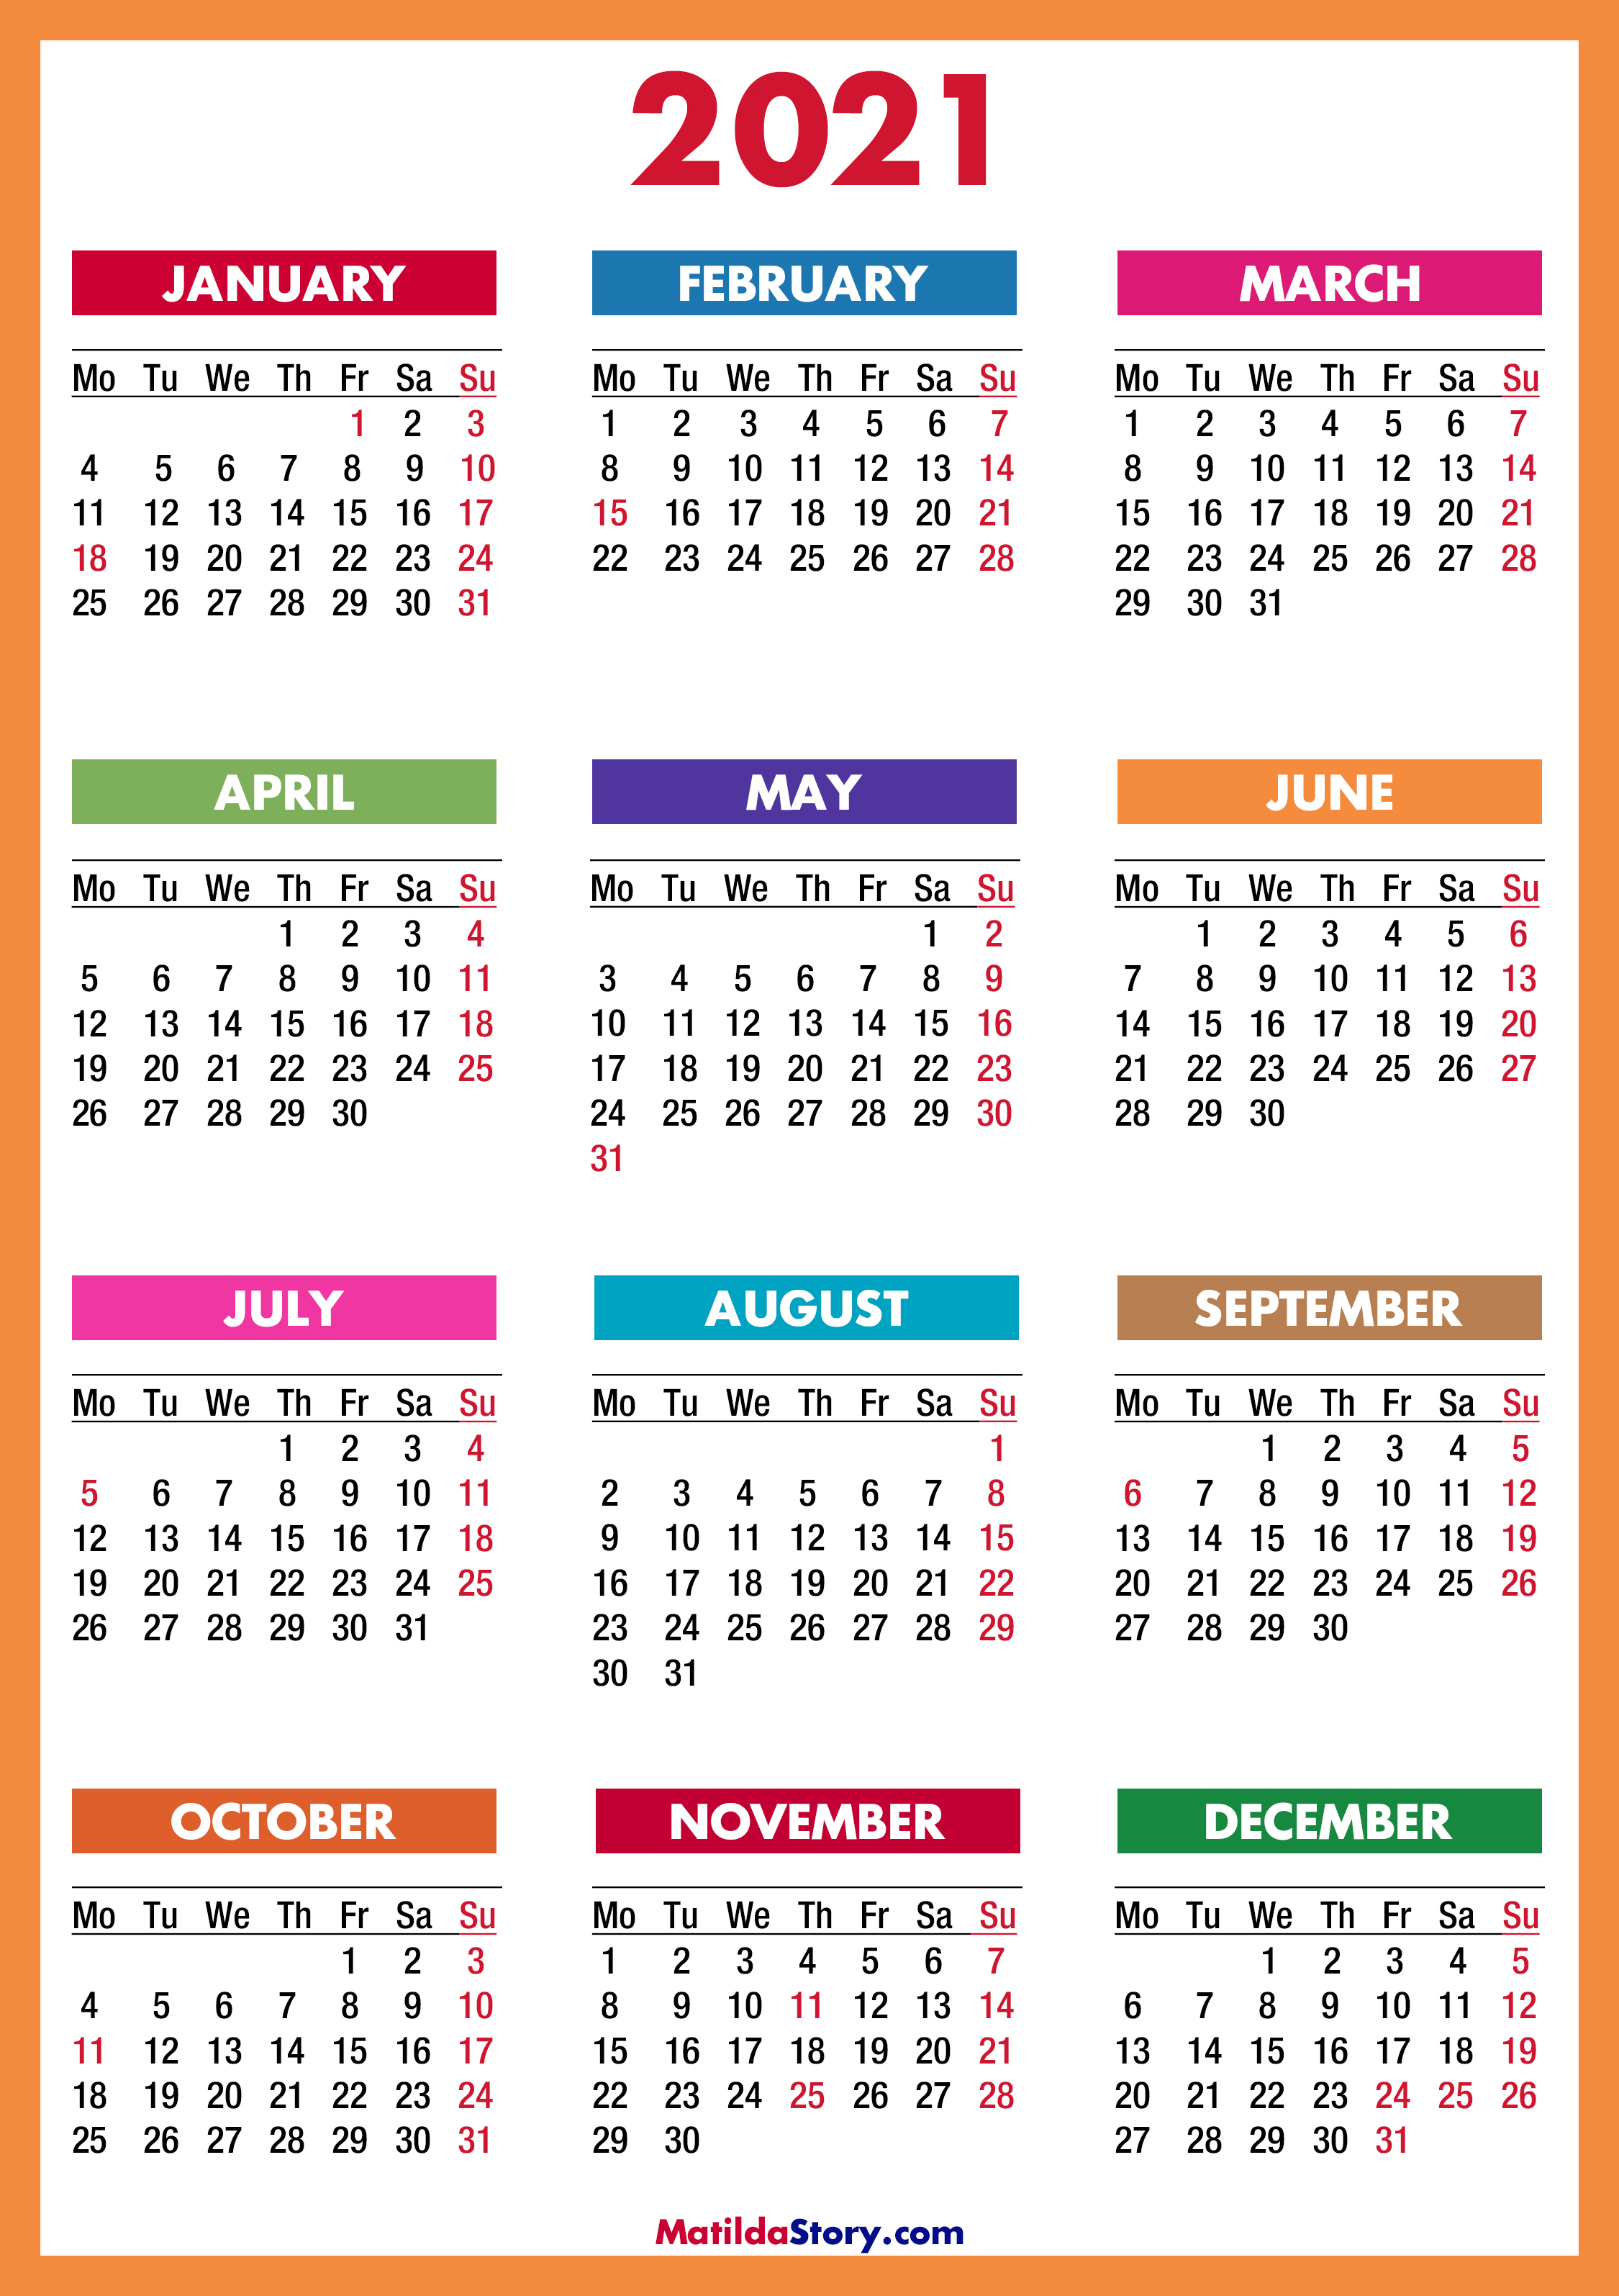 2021 Calendar Pdf With Holidays - March 2021